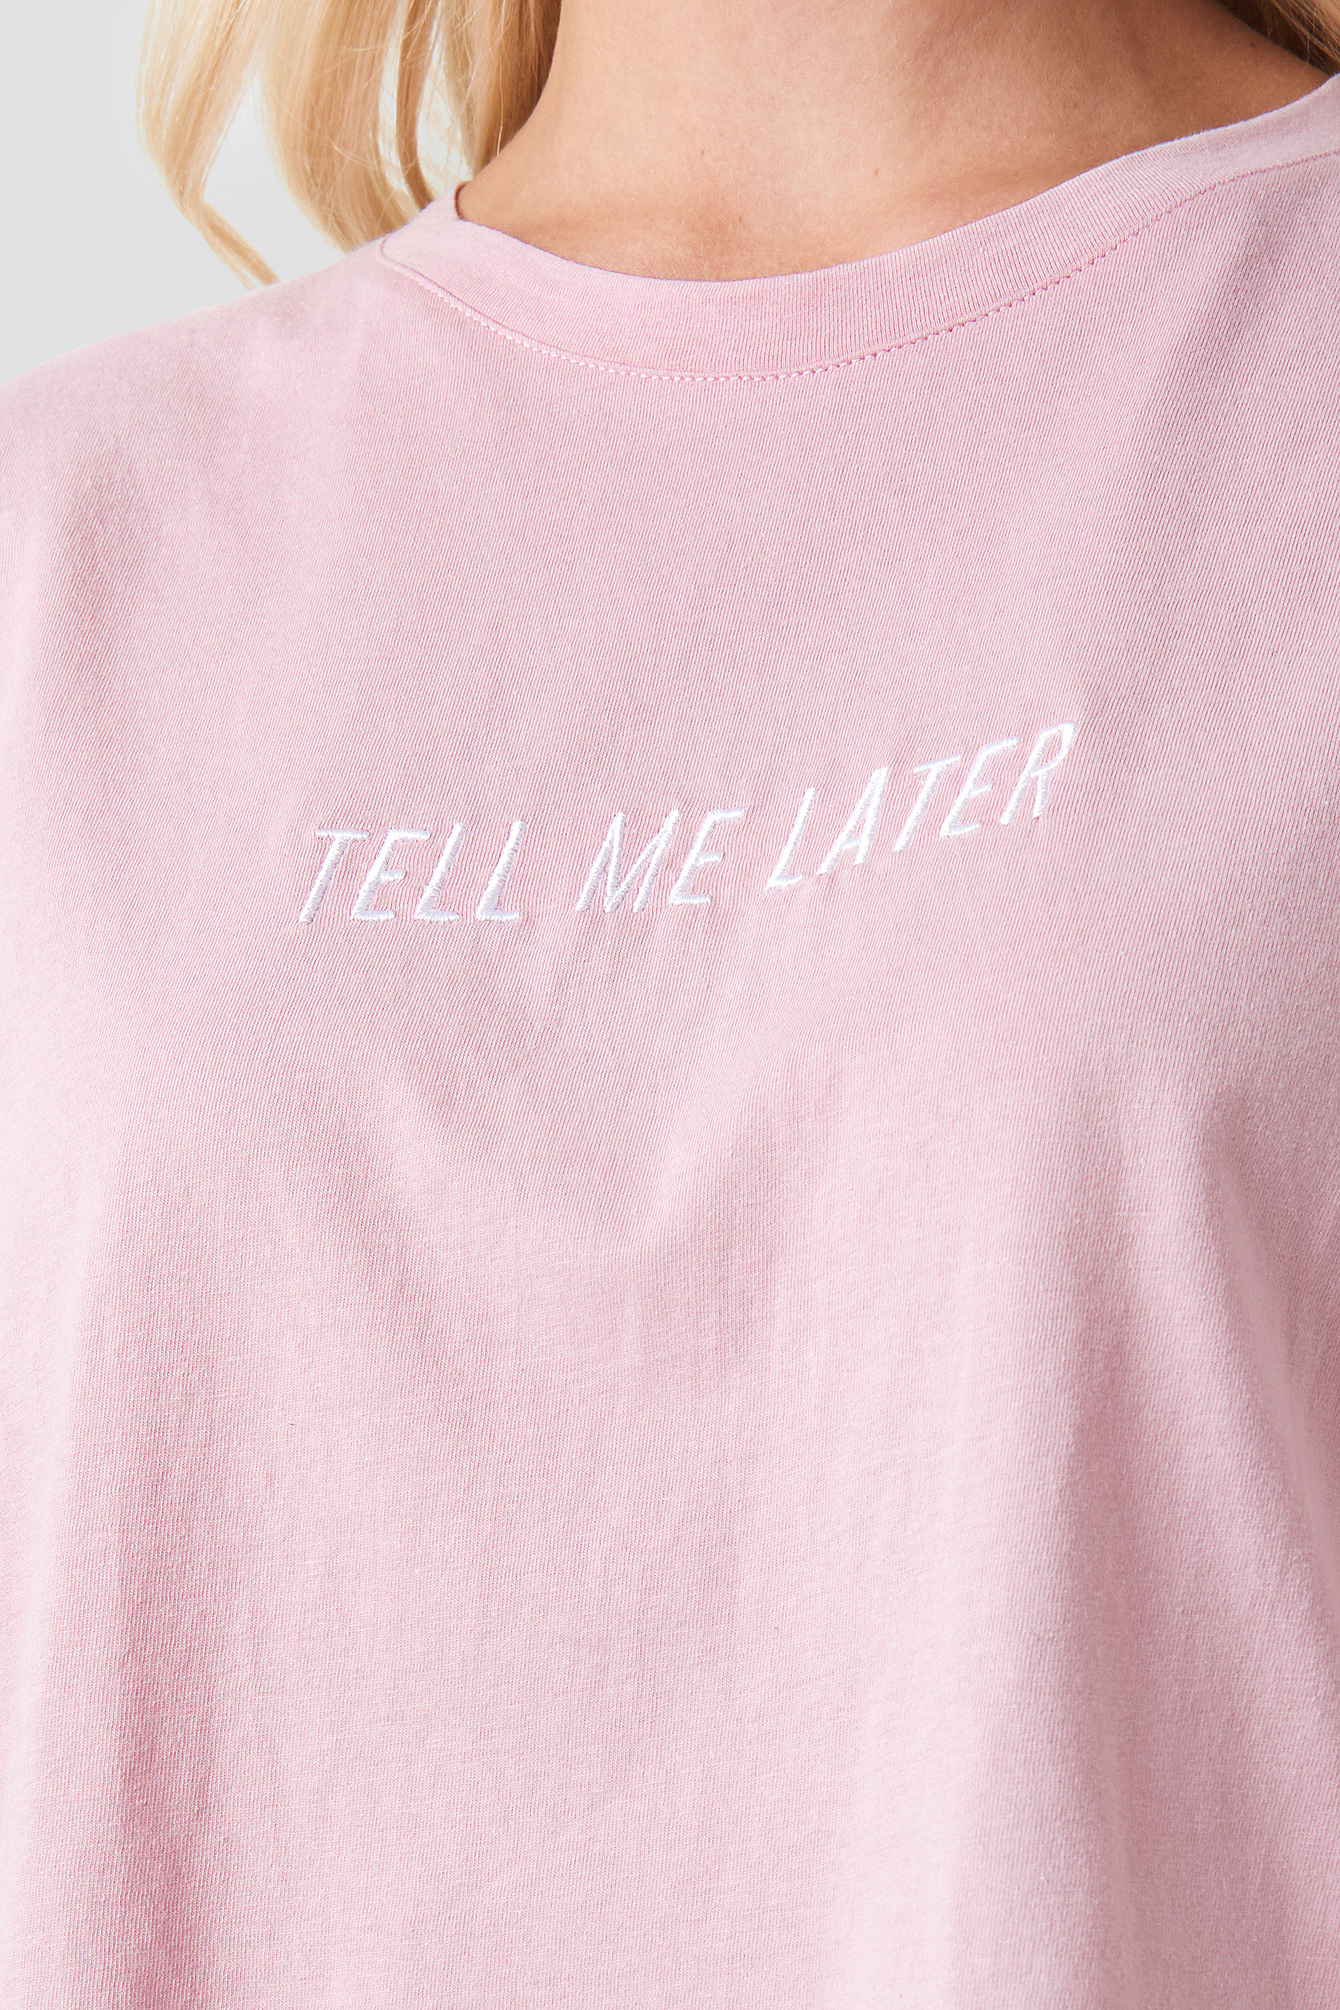 Tell Me Later Oversized Tee NA-KD.COM